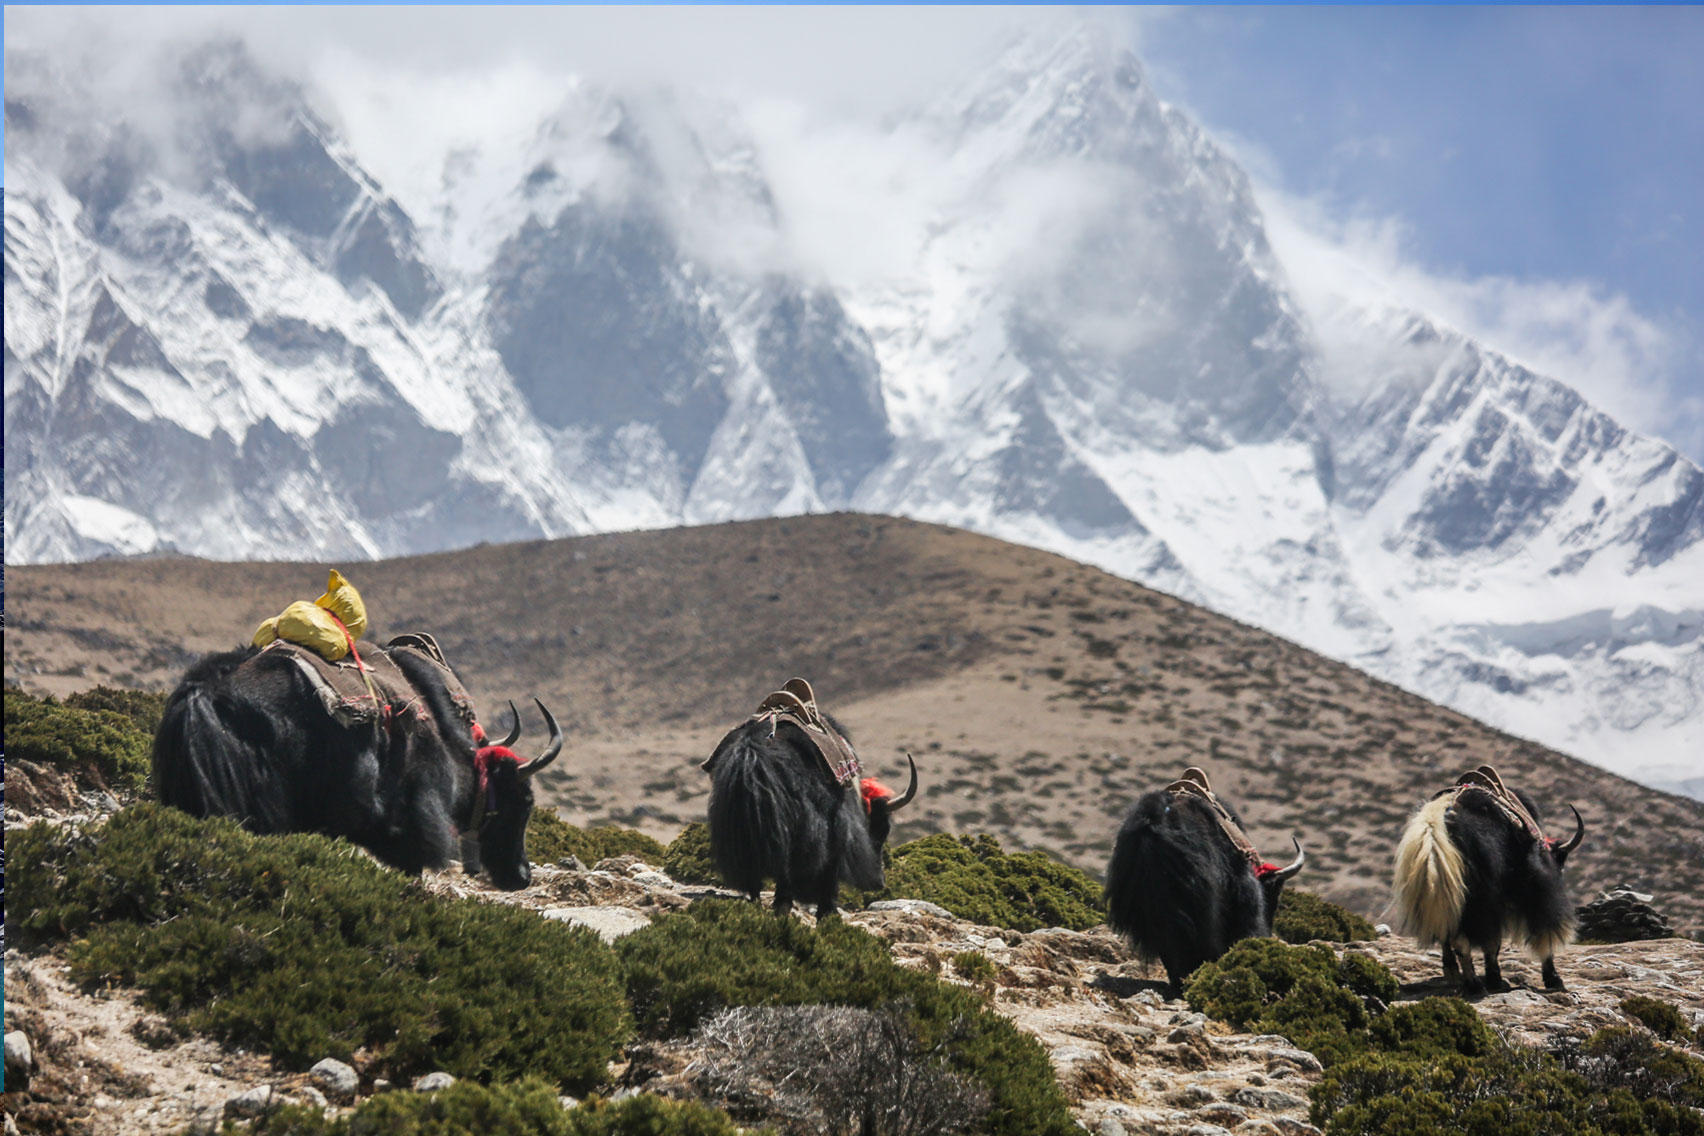 Day 13: Trek from Thame (4000m) to Monzo (5hrs, 2845m)